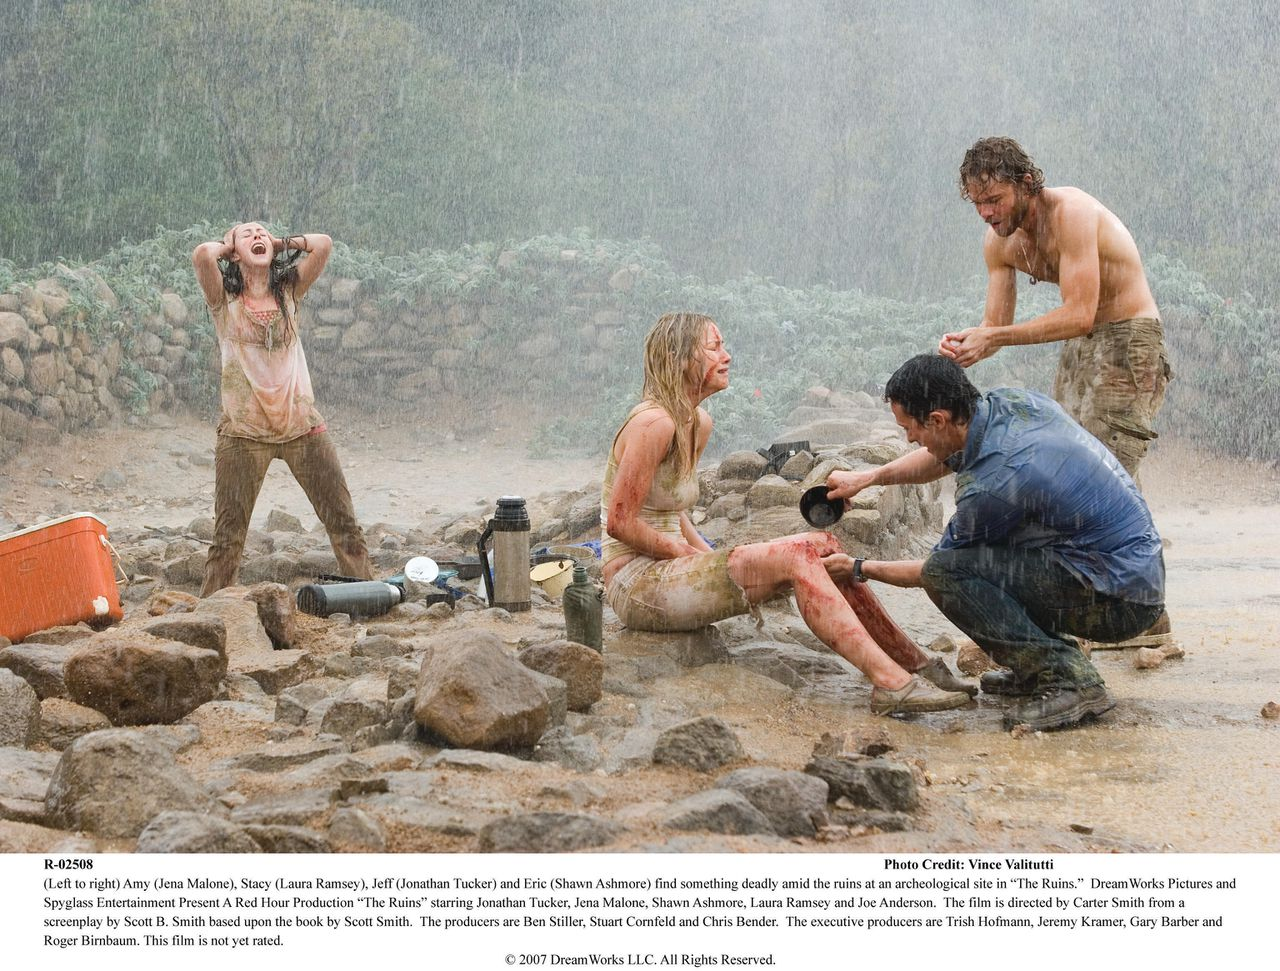 """scene uit de film The Ruins (2008) FOTO: UPI (Left to right) Amy (Jena Malone), Stacy (Laura Ramsey), Jeff (Jonathan Tucker) and Eric (Shawn Ashmore) find something deadly amid the ruins at an archeological site in """"The Ruins."""" DreamWorks Picturesand Spyglass Entertainment Present A Red Hour Production """"The Ruins"""" starring Jonathan Tucker, Jena Malone, Shawn Ashmore, Laura Ramsey and Joe Anderson. The film is directed by Carter Smith from ascreenplay by Scott B. Smith based upon the book by Scott Smith. The producers are Ben Stiller, Stuart Cornfeld and Chris Bender. The executive producers are Trish Hofmann, Jeremy Kramer,Gary Barber and Roger Birnbaum. This film is not yet rated."""